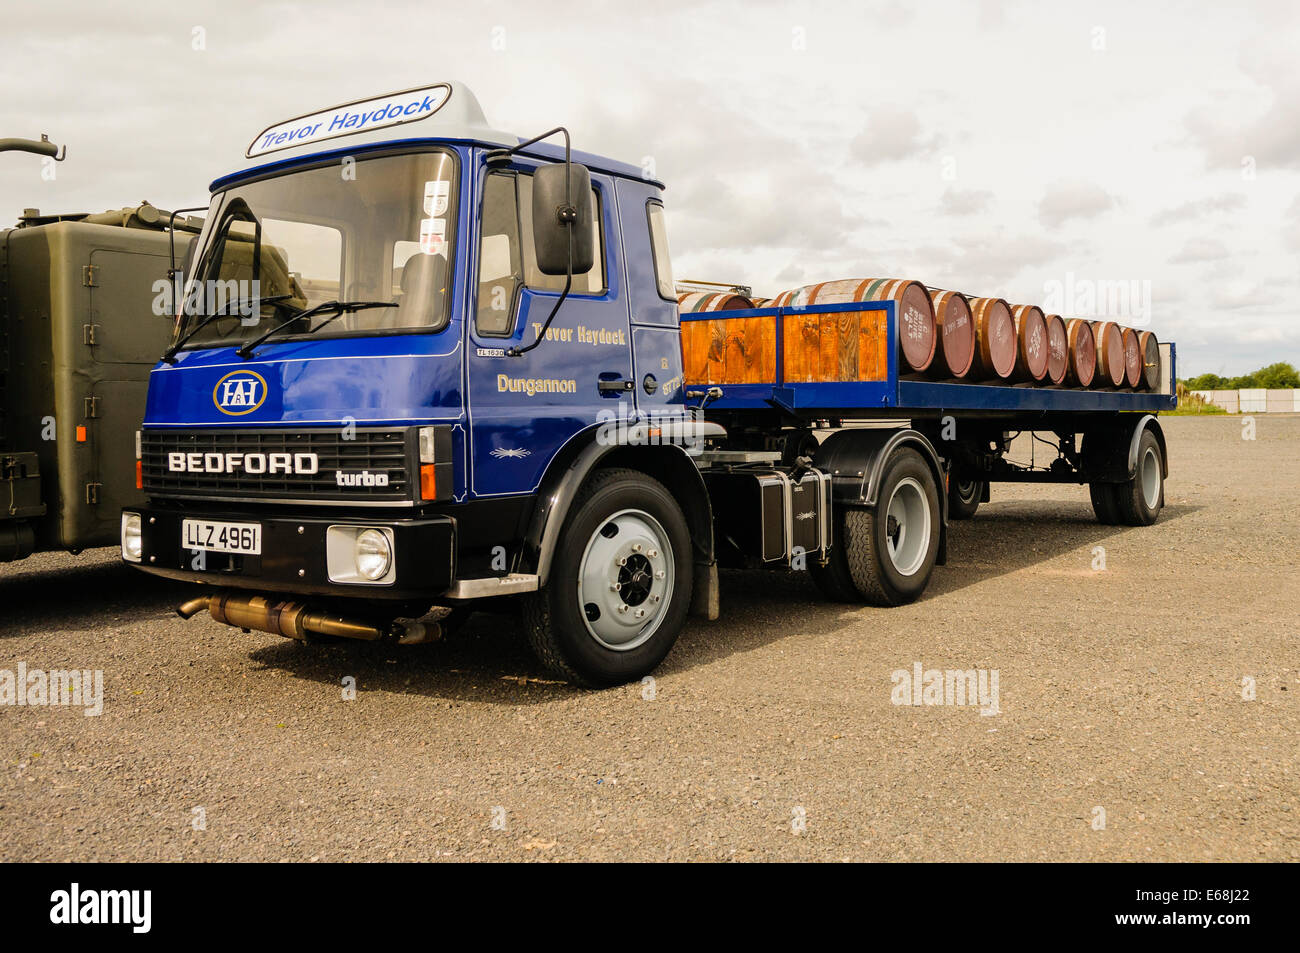 Bedford flat-bed  articulated lorry from the 1980s carrying whisky barrels from the Bushmills Distillery - Stock Image